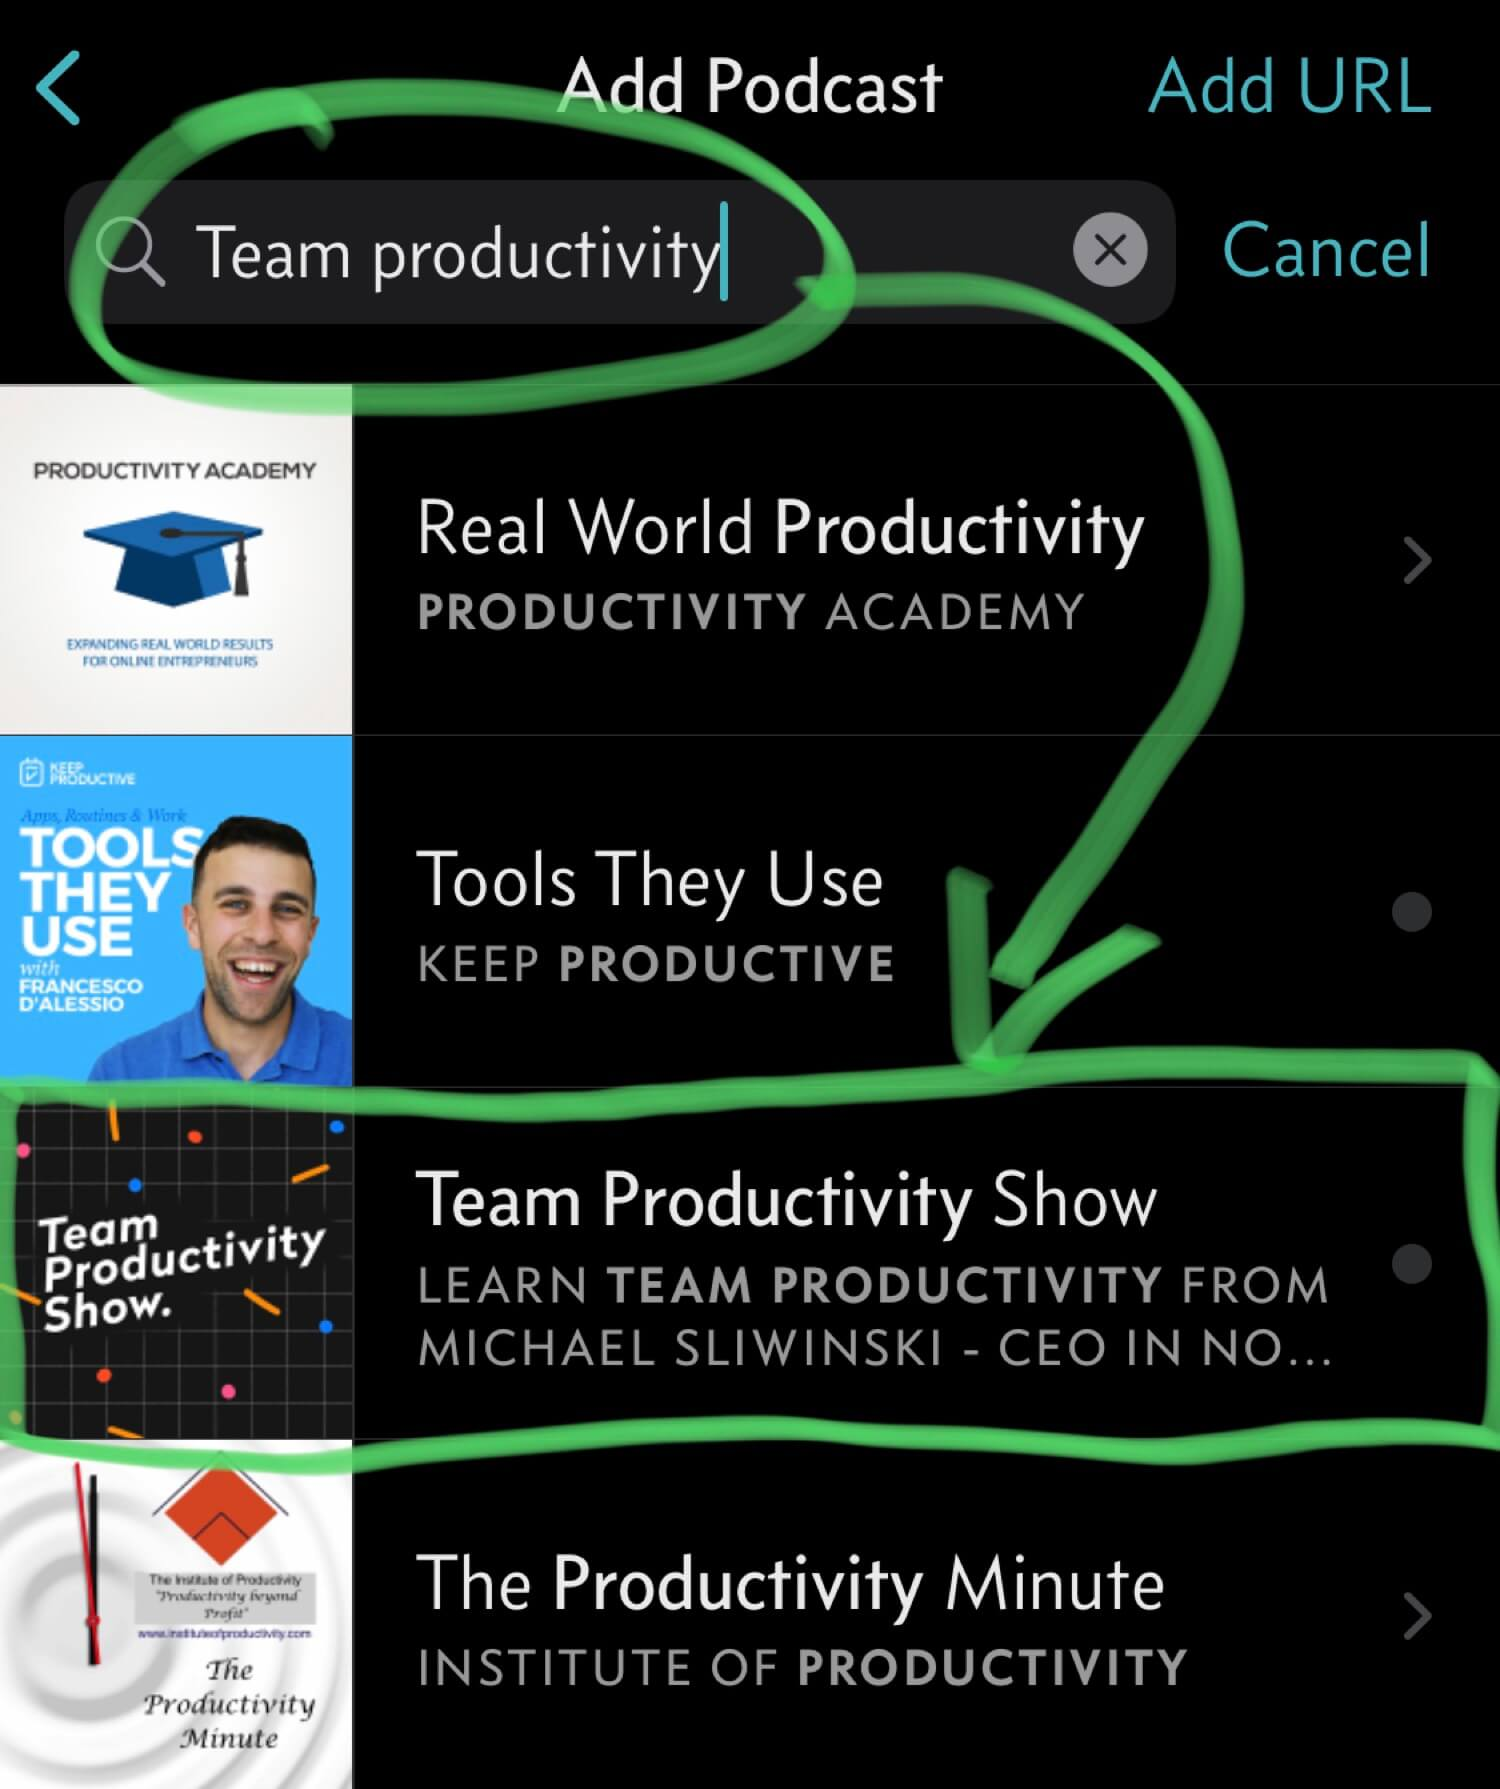 Subscribe to my Team Productivity Show as an audio podcast!